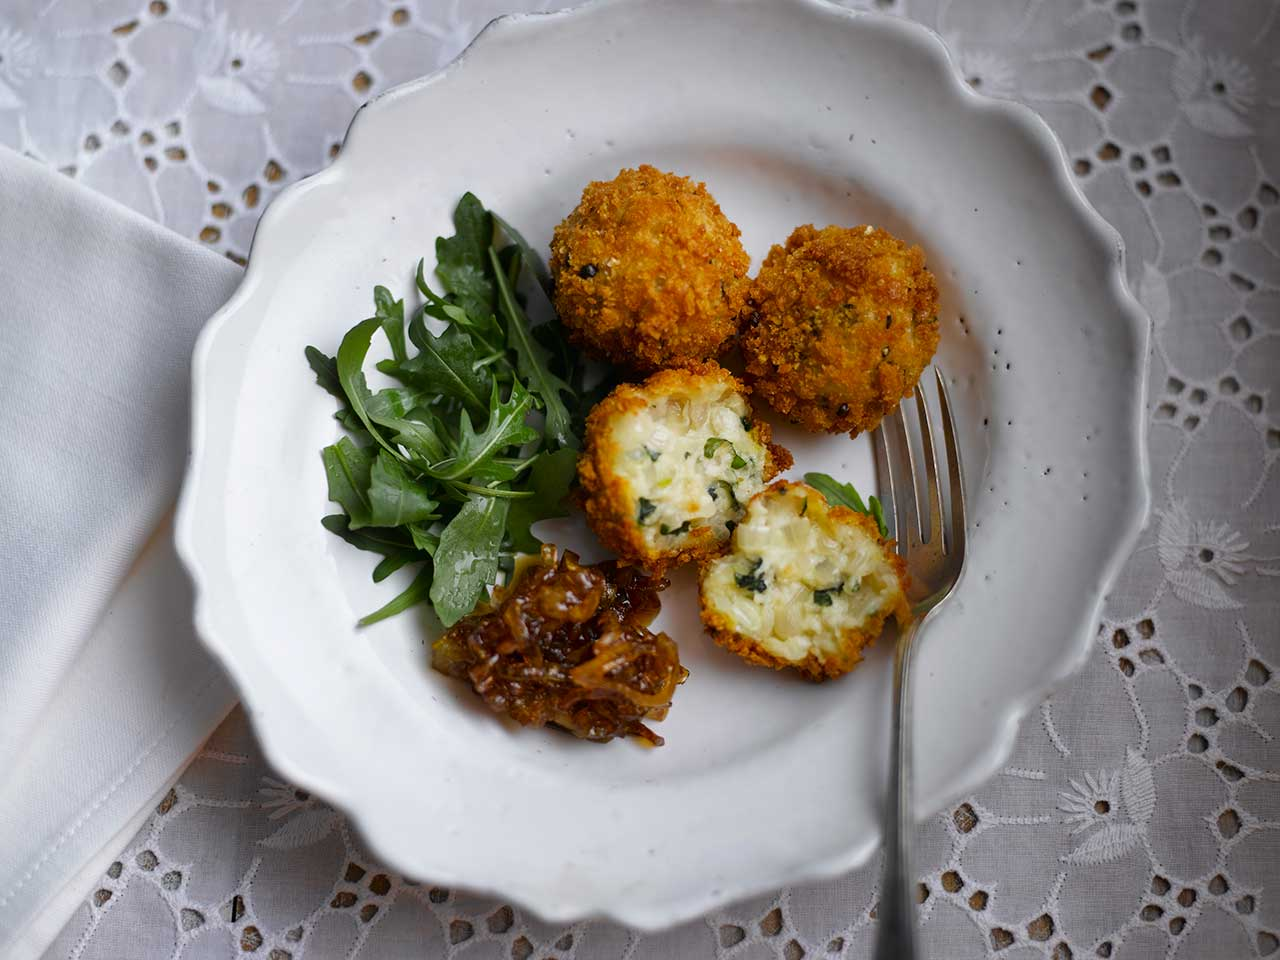 Crispy shallot and basil fritters